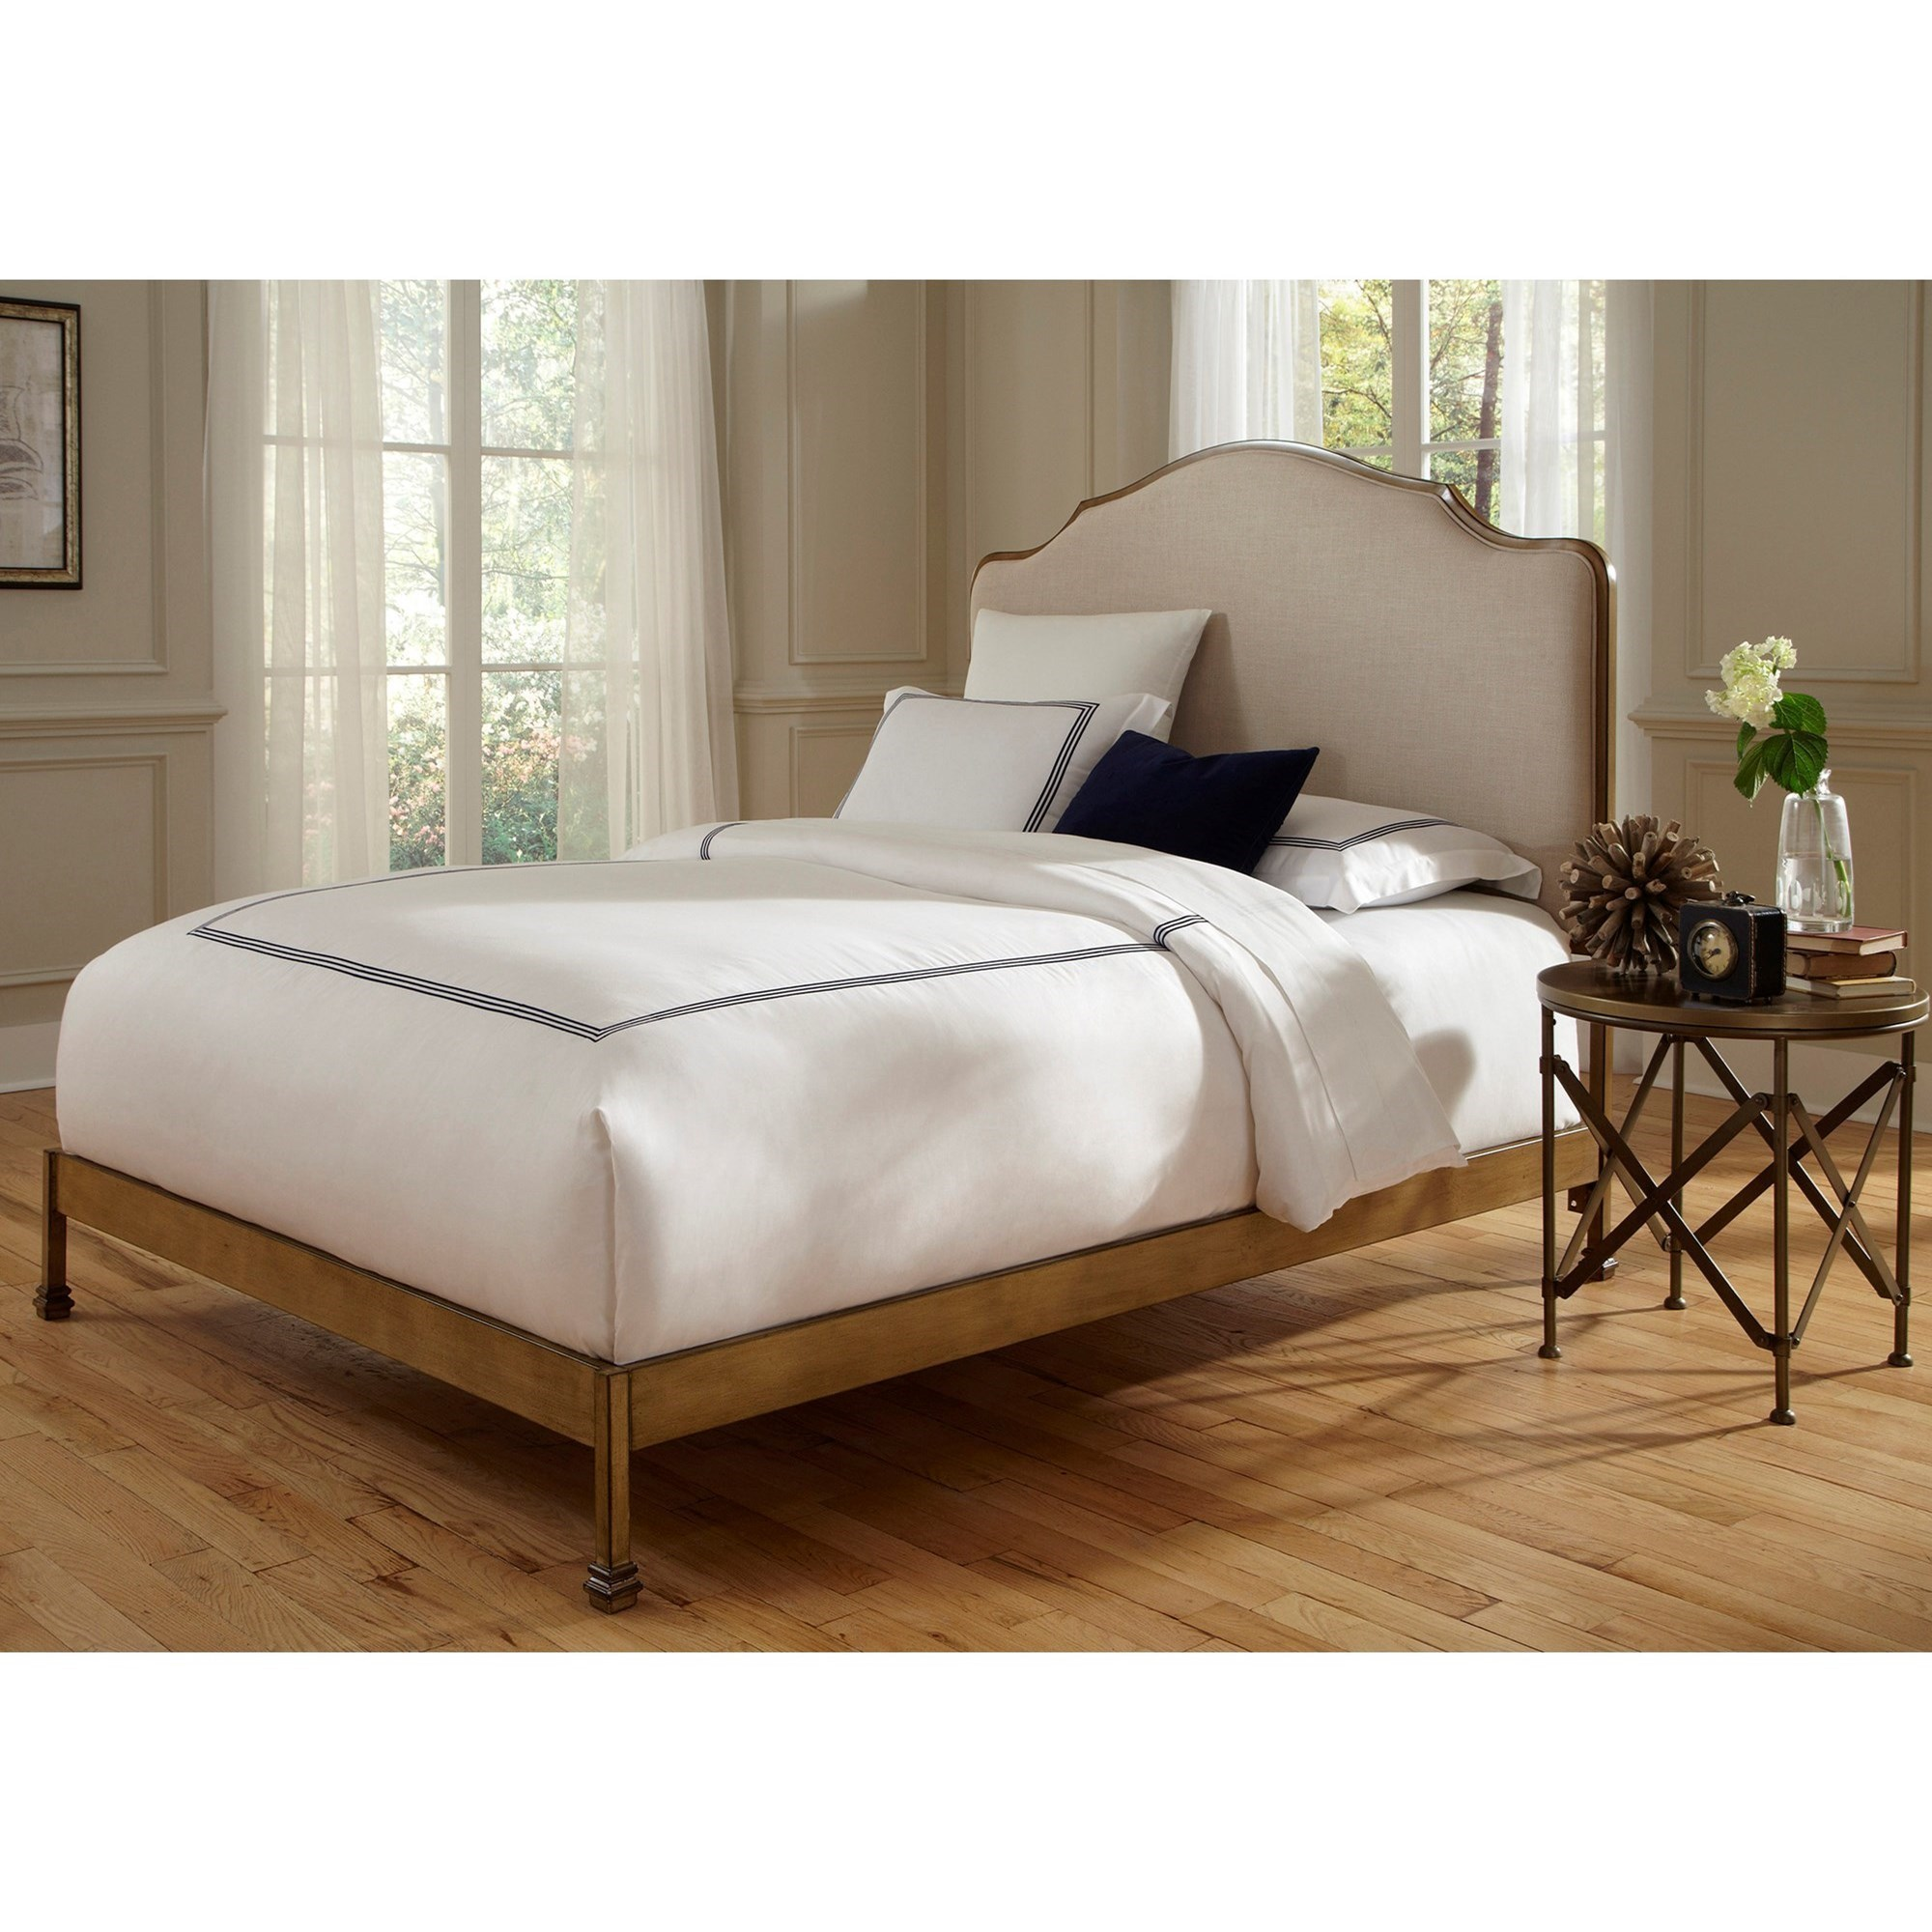 Fashion Bed Group Calvados Calvados Queen Bed With Metal Headboard And Sand  Colored Upholstery